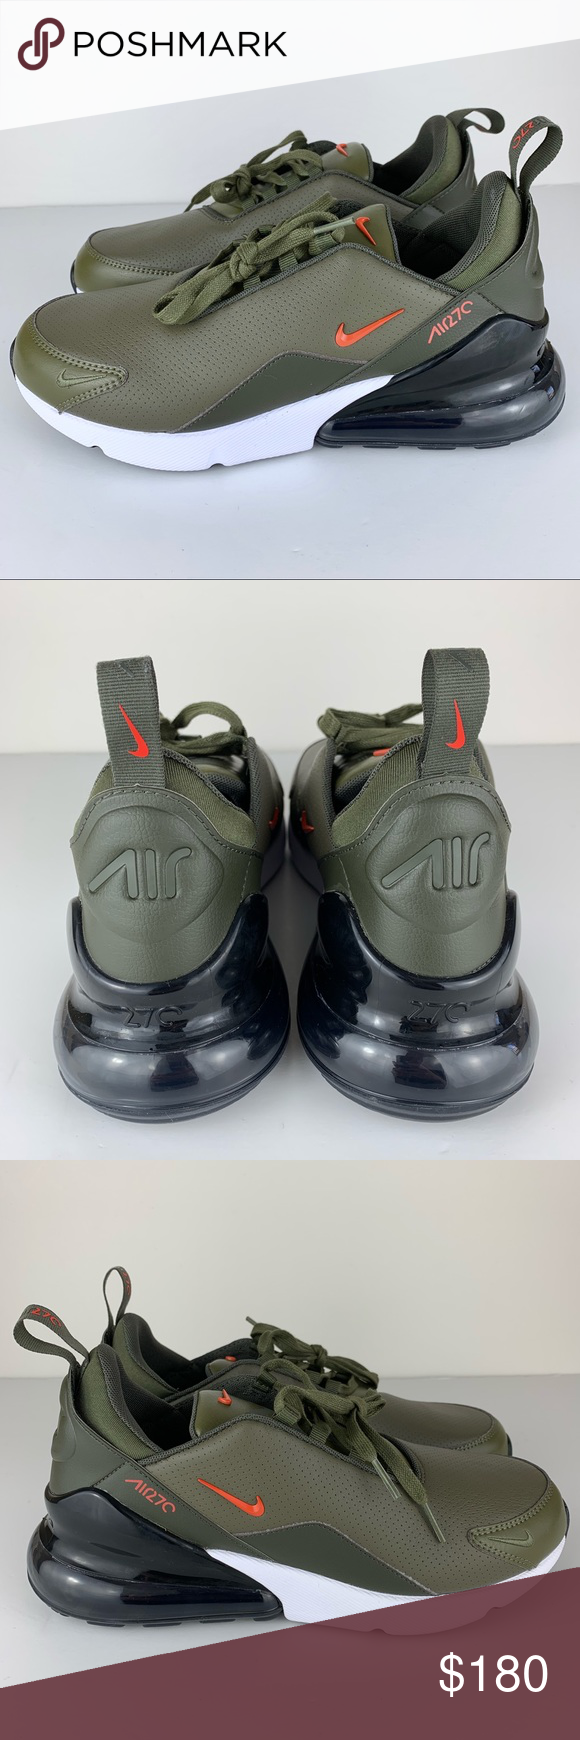 Nike Shoes | Nike Air Max 270 Premium Leather Olive Green